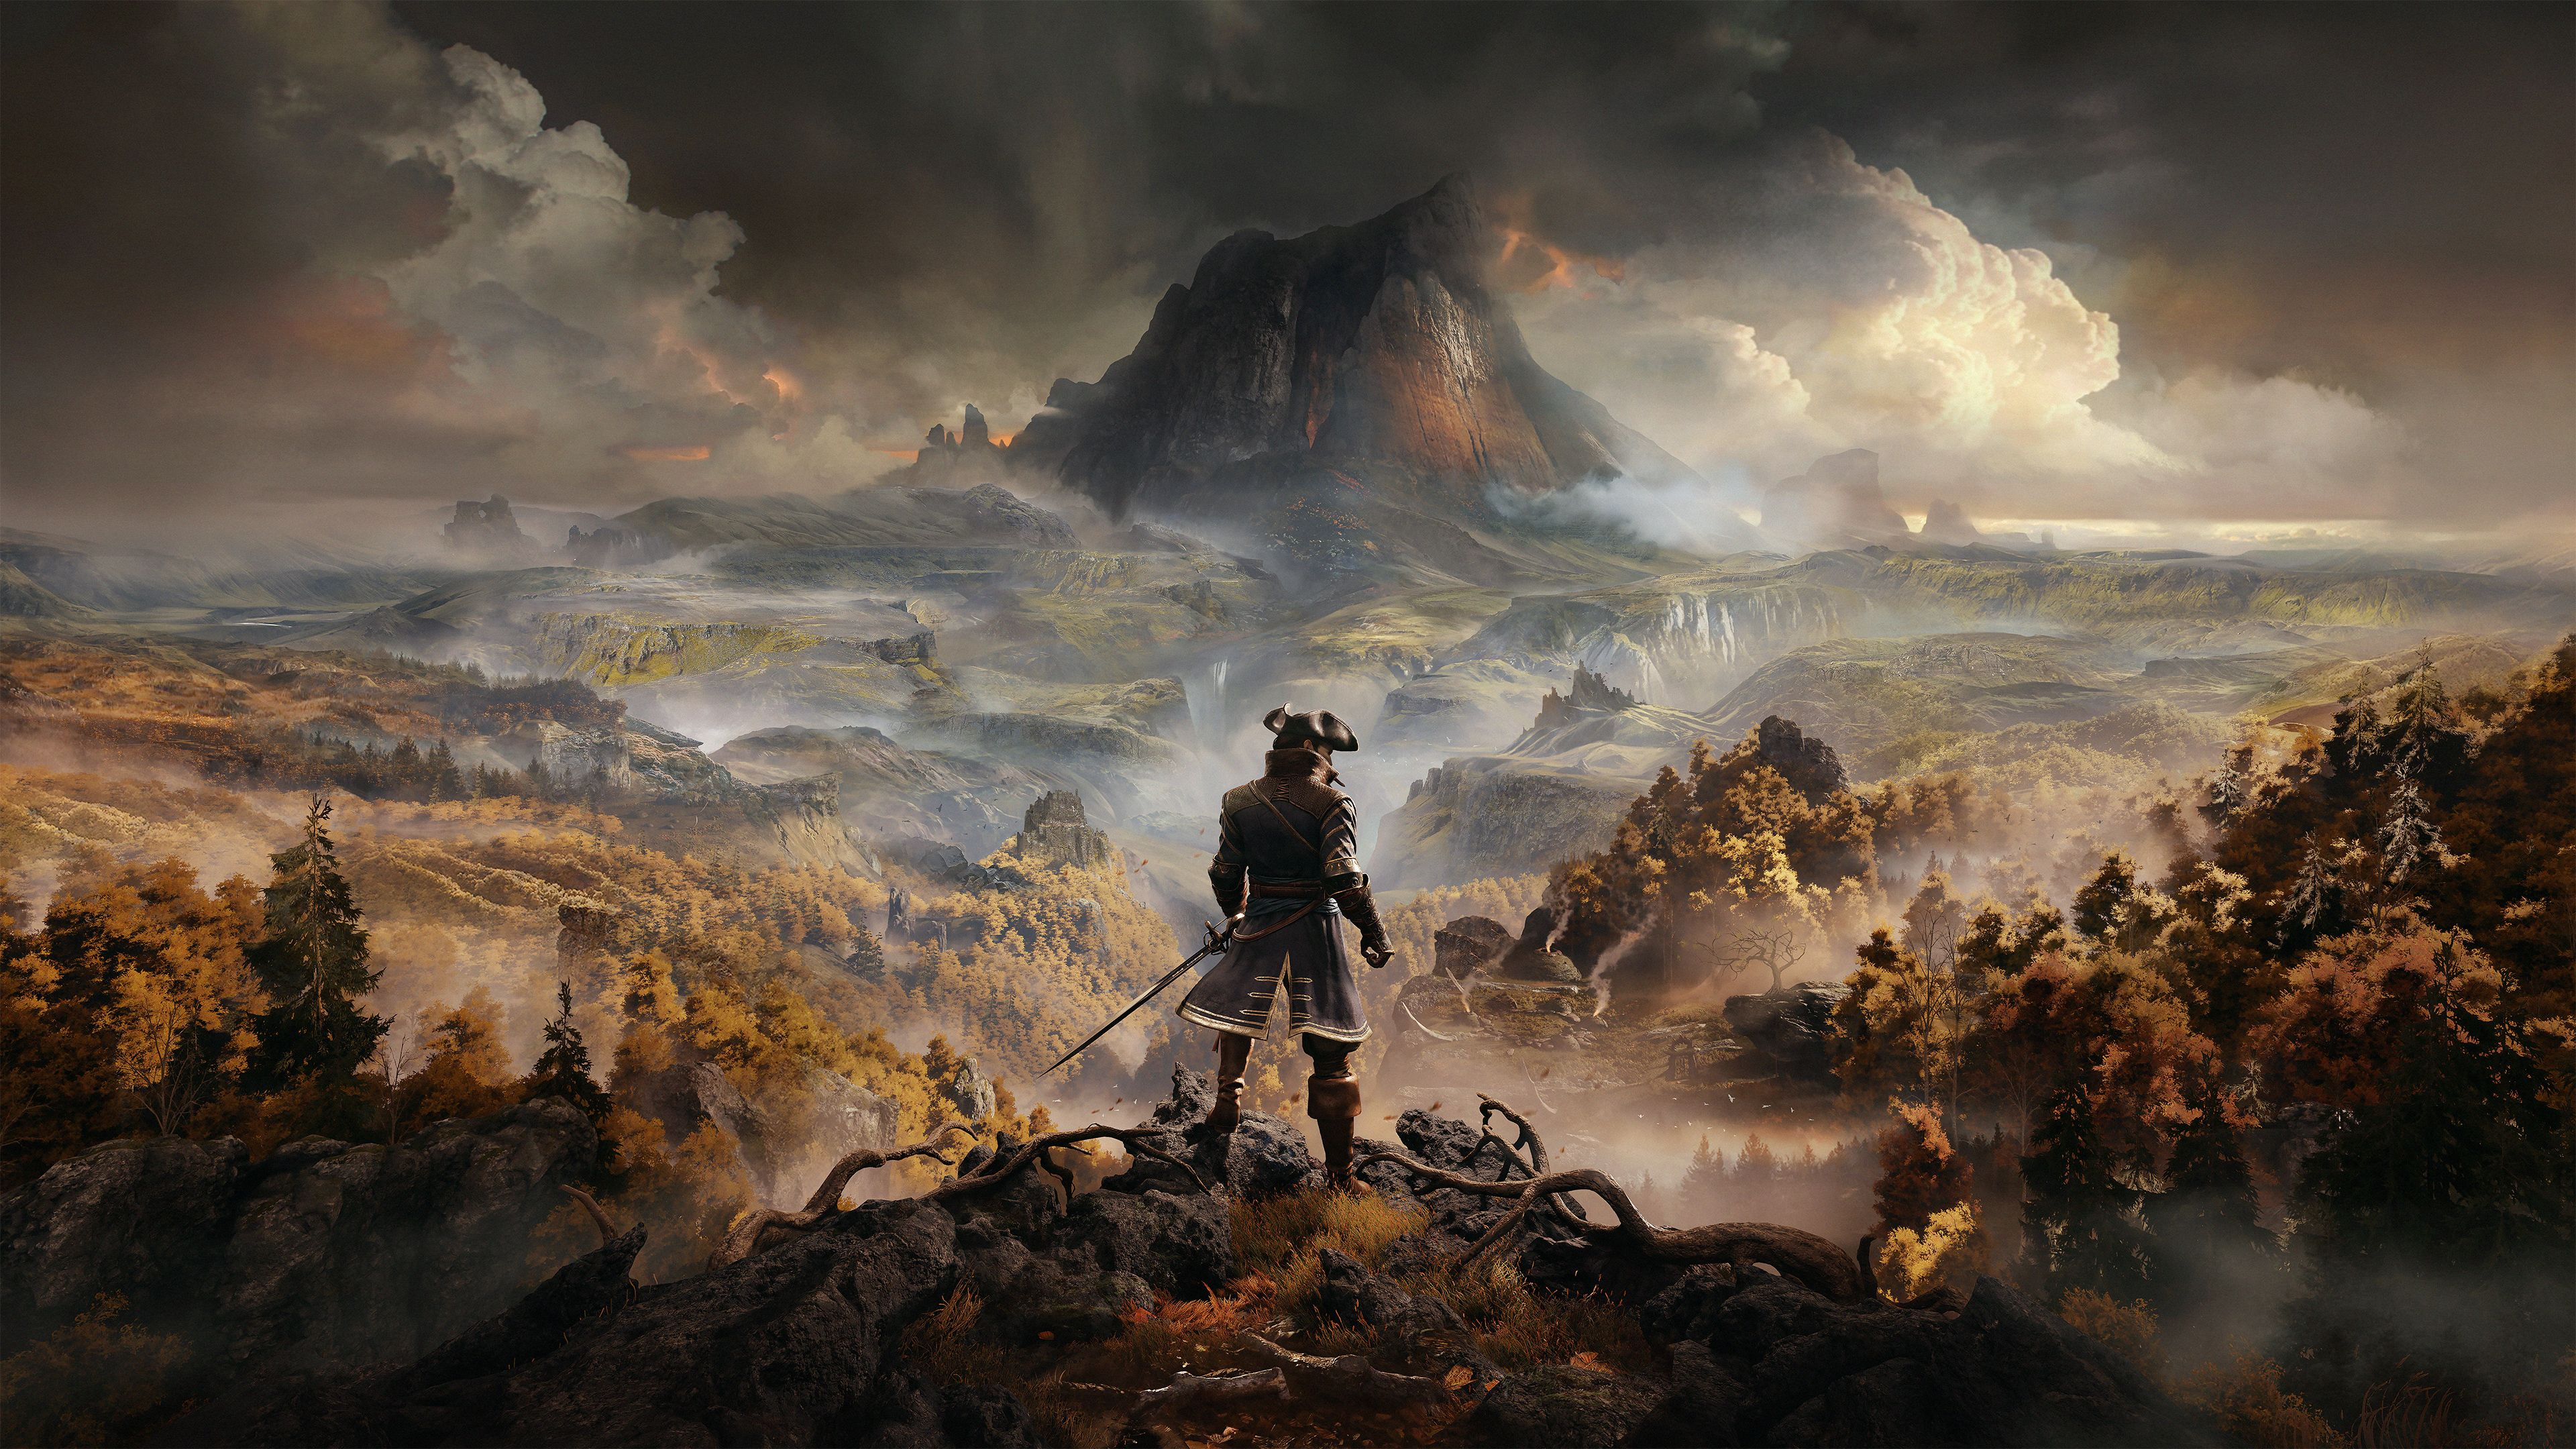 Greedfall Hd Wallpapers Greedfall Wallpapers Games Wallpapers 4k Wallpapers 2020 Games Wallpapers Dragon Age Roleplaying Game Rpg